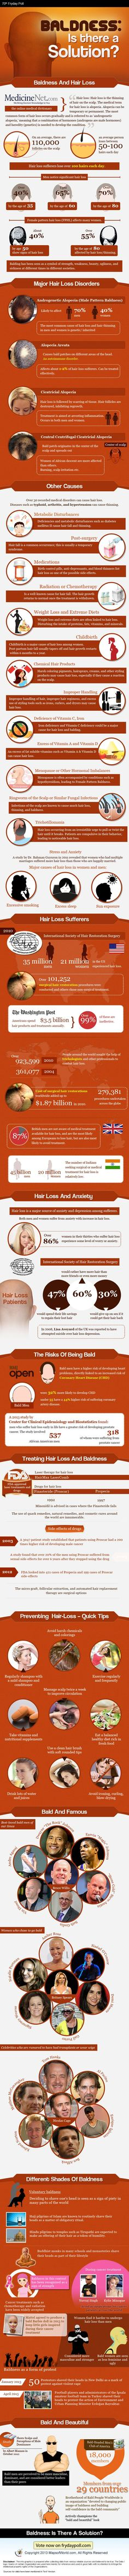 Find In-depth Review And Infographic About Baldness, Hair loss, Alopecia, Male Pattern Baldness, Female Pattern Baldness, Androgenetic Alopecia, Alopecia Areata, Cicatricial Alopecia, Central Centrifugal Cicatricial Alopecia, Hair loss Causes, Balding Causes, Hair loss Prevention, Balding Prevention, Bald Celebrities, Hair loss Treatments